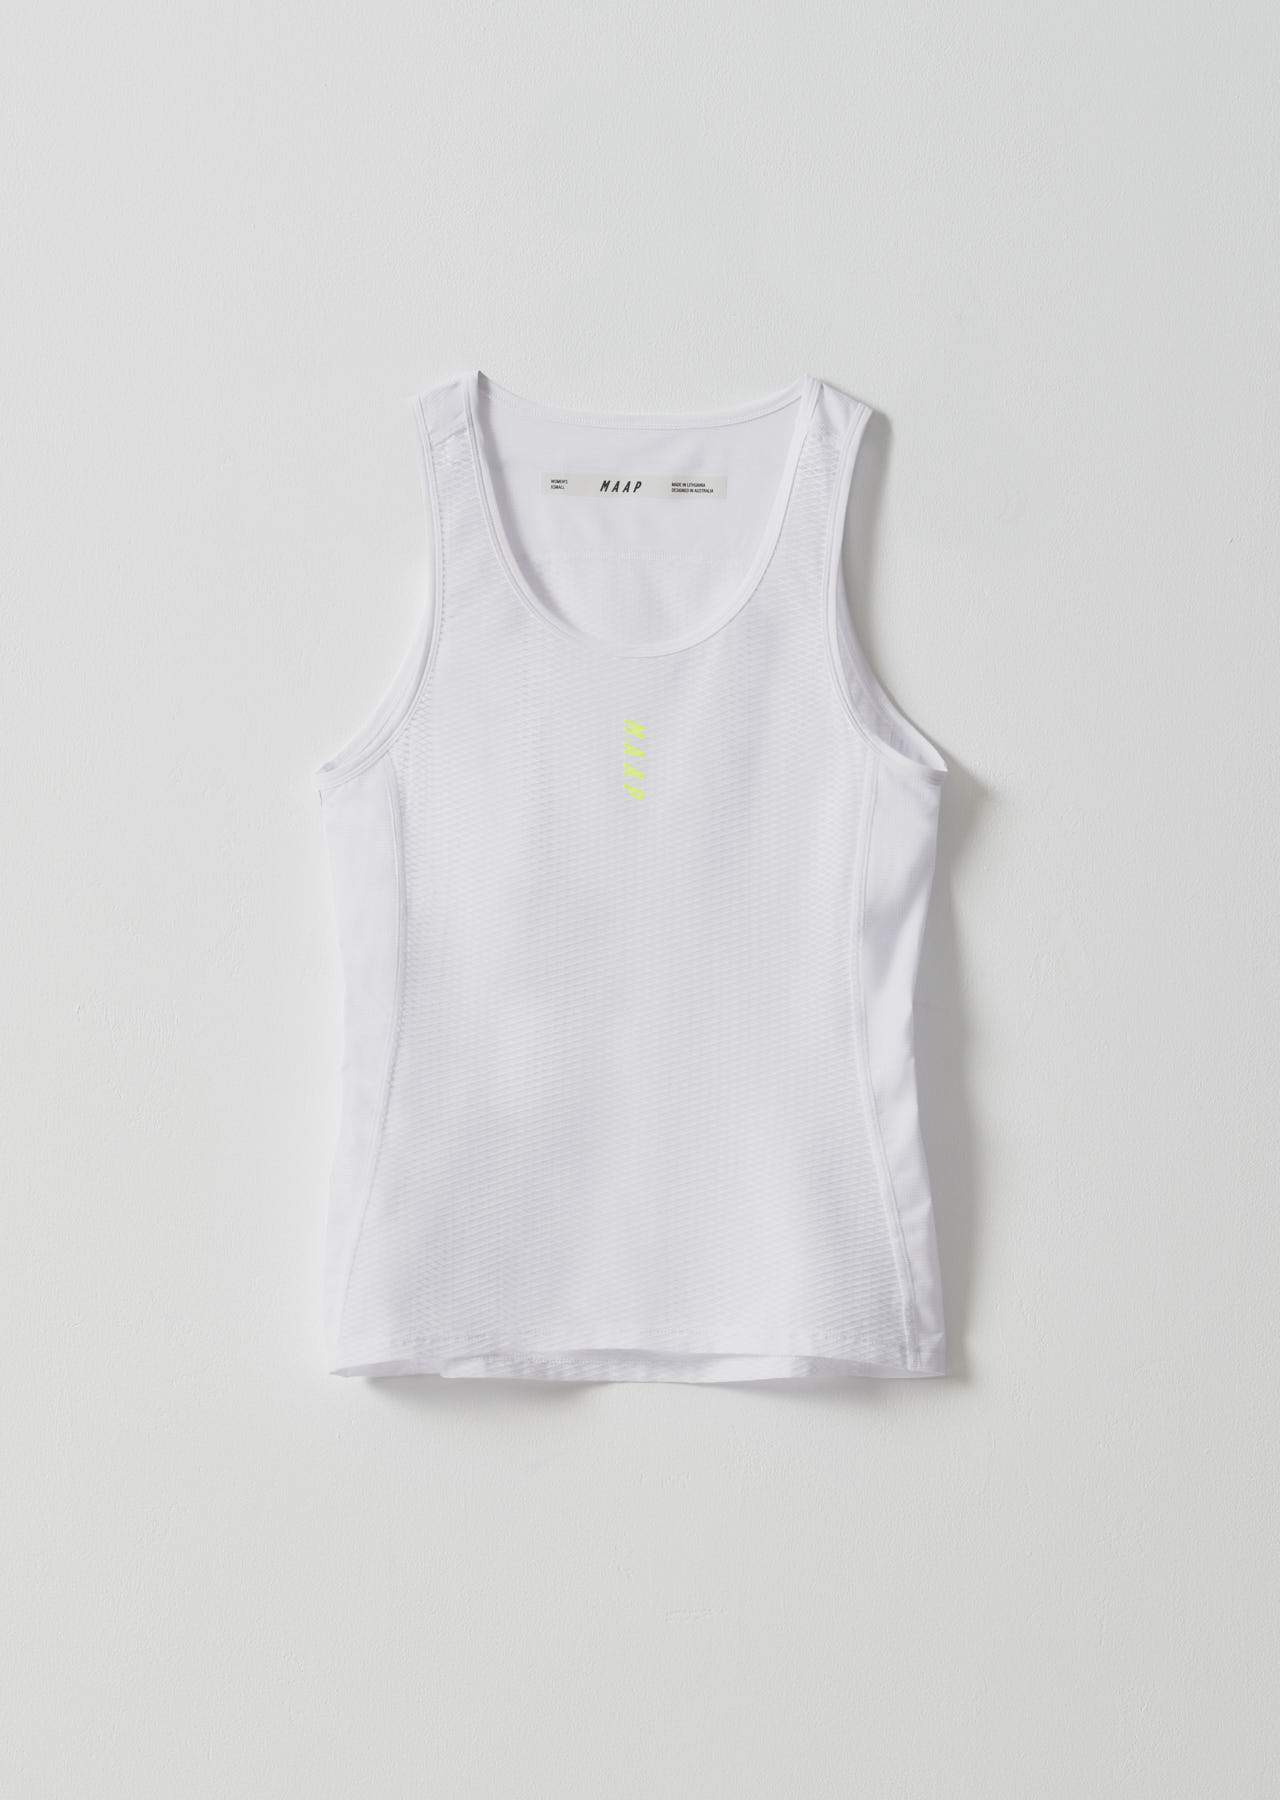 Women's Team Base Layer - White